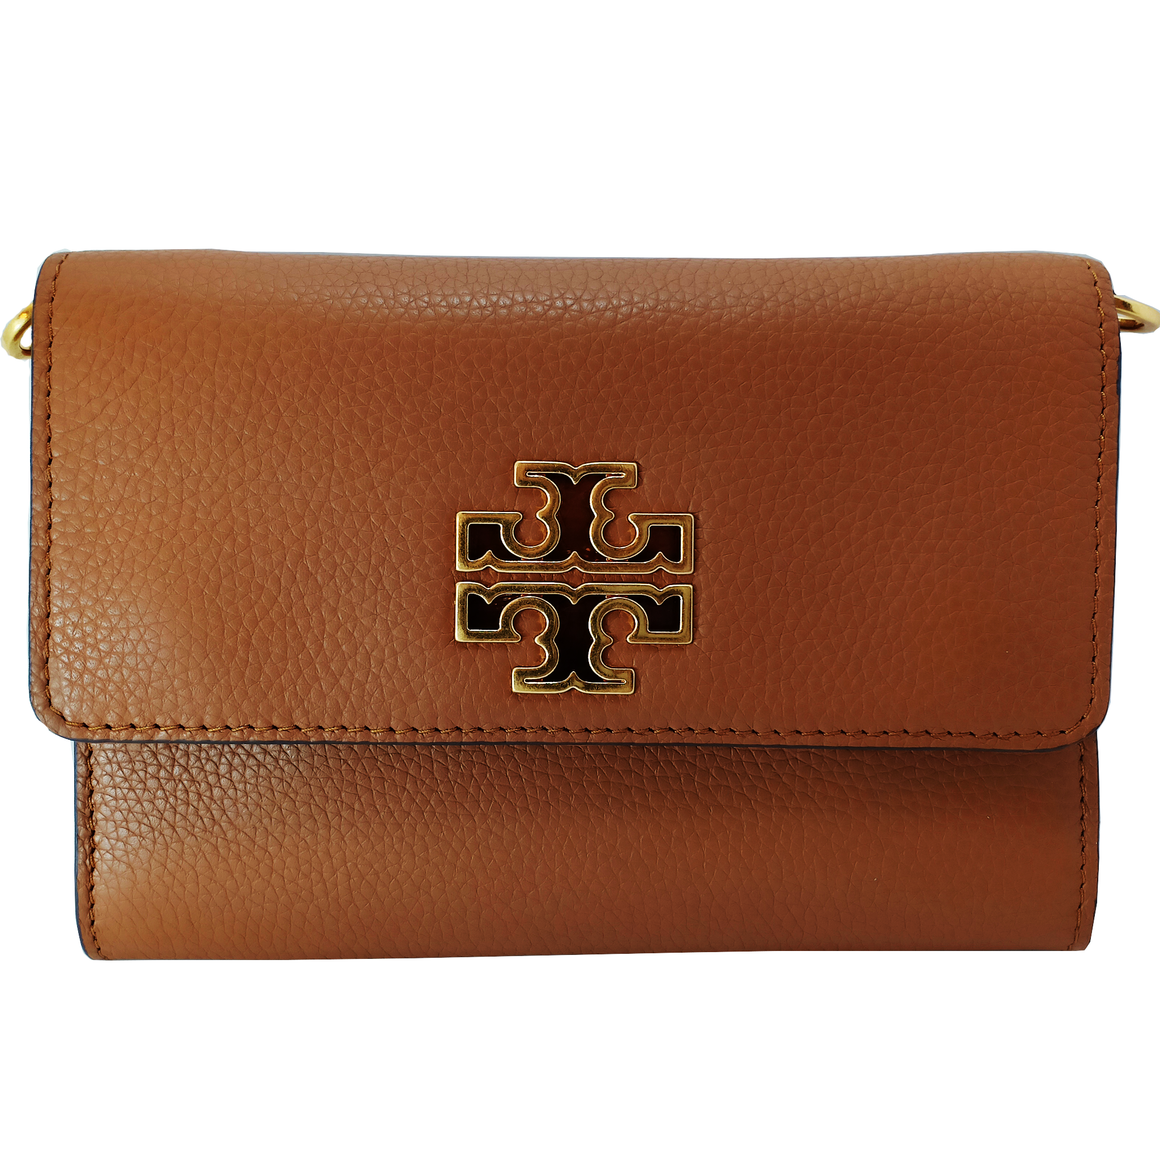 Tory Burch Britten Chain Wallet Cross Body